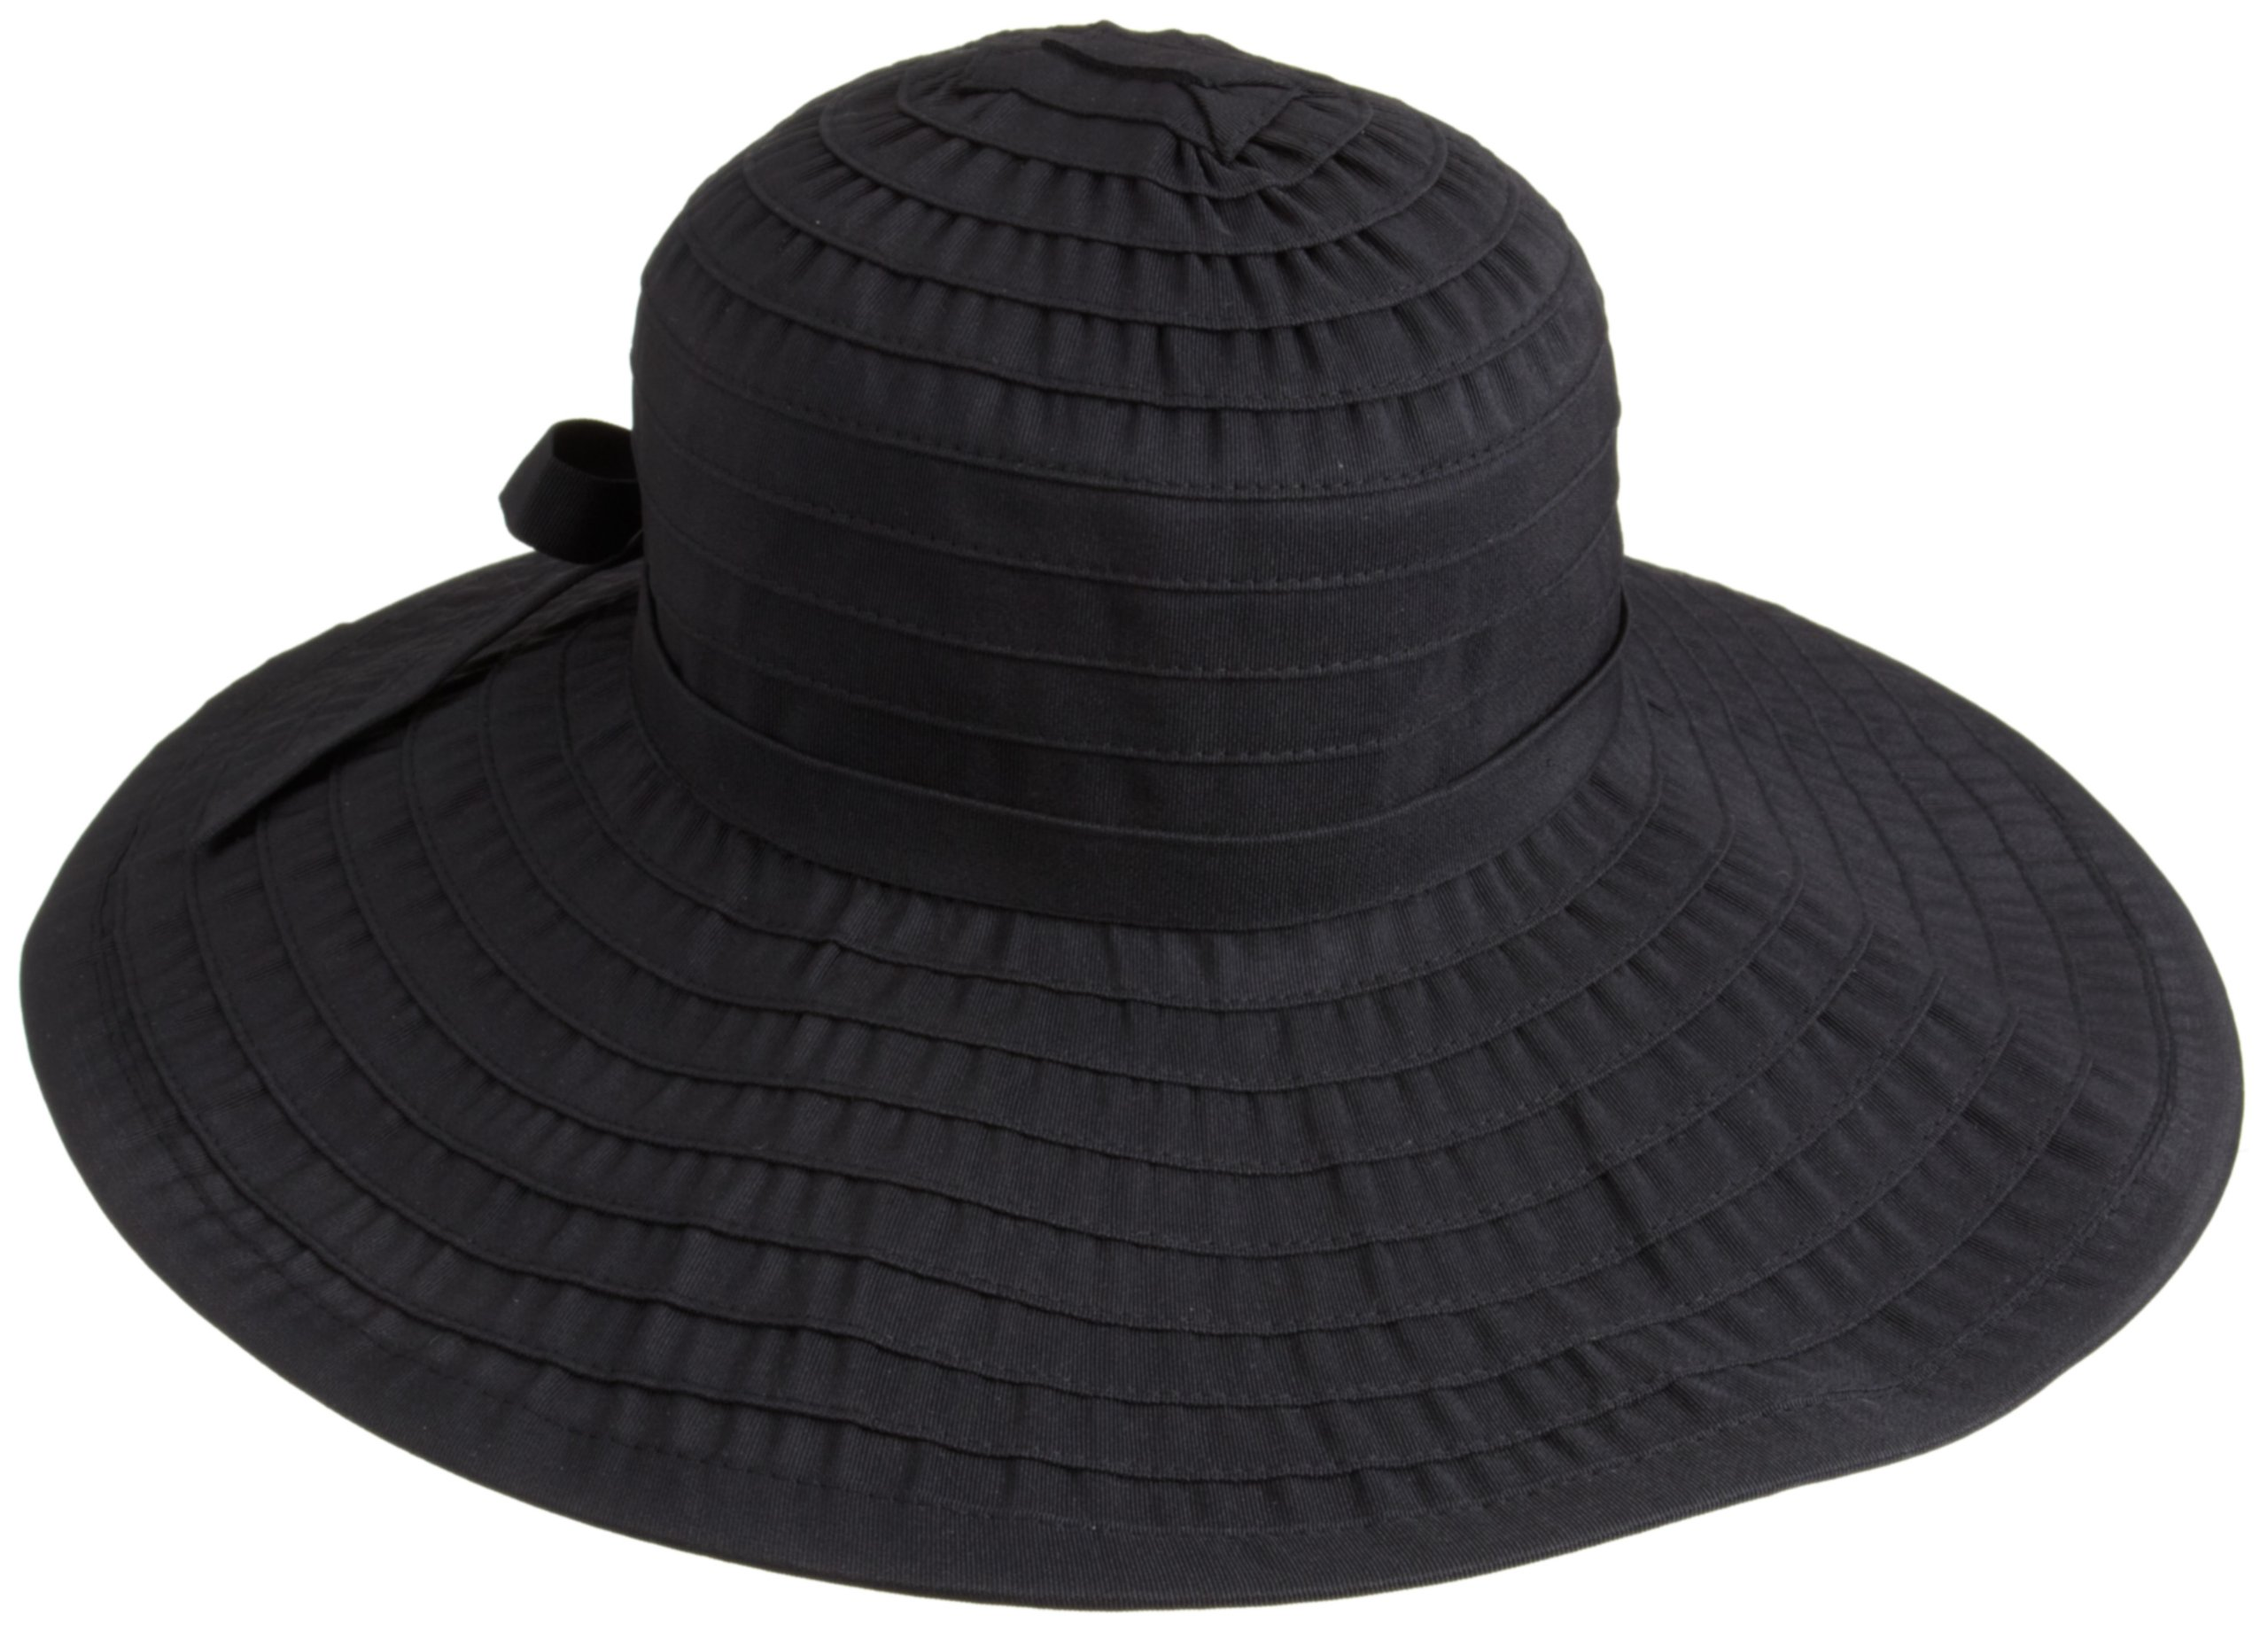 San Diego Hat Company Women's Ribbon Large Brim Hat,Black,One Size by San Diego Hat Company